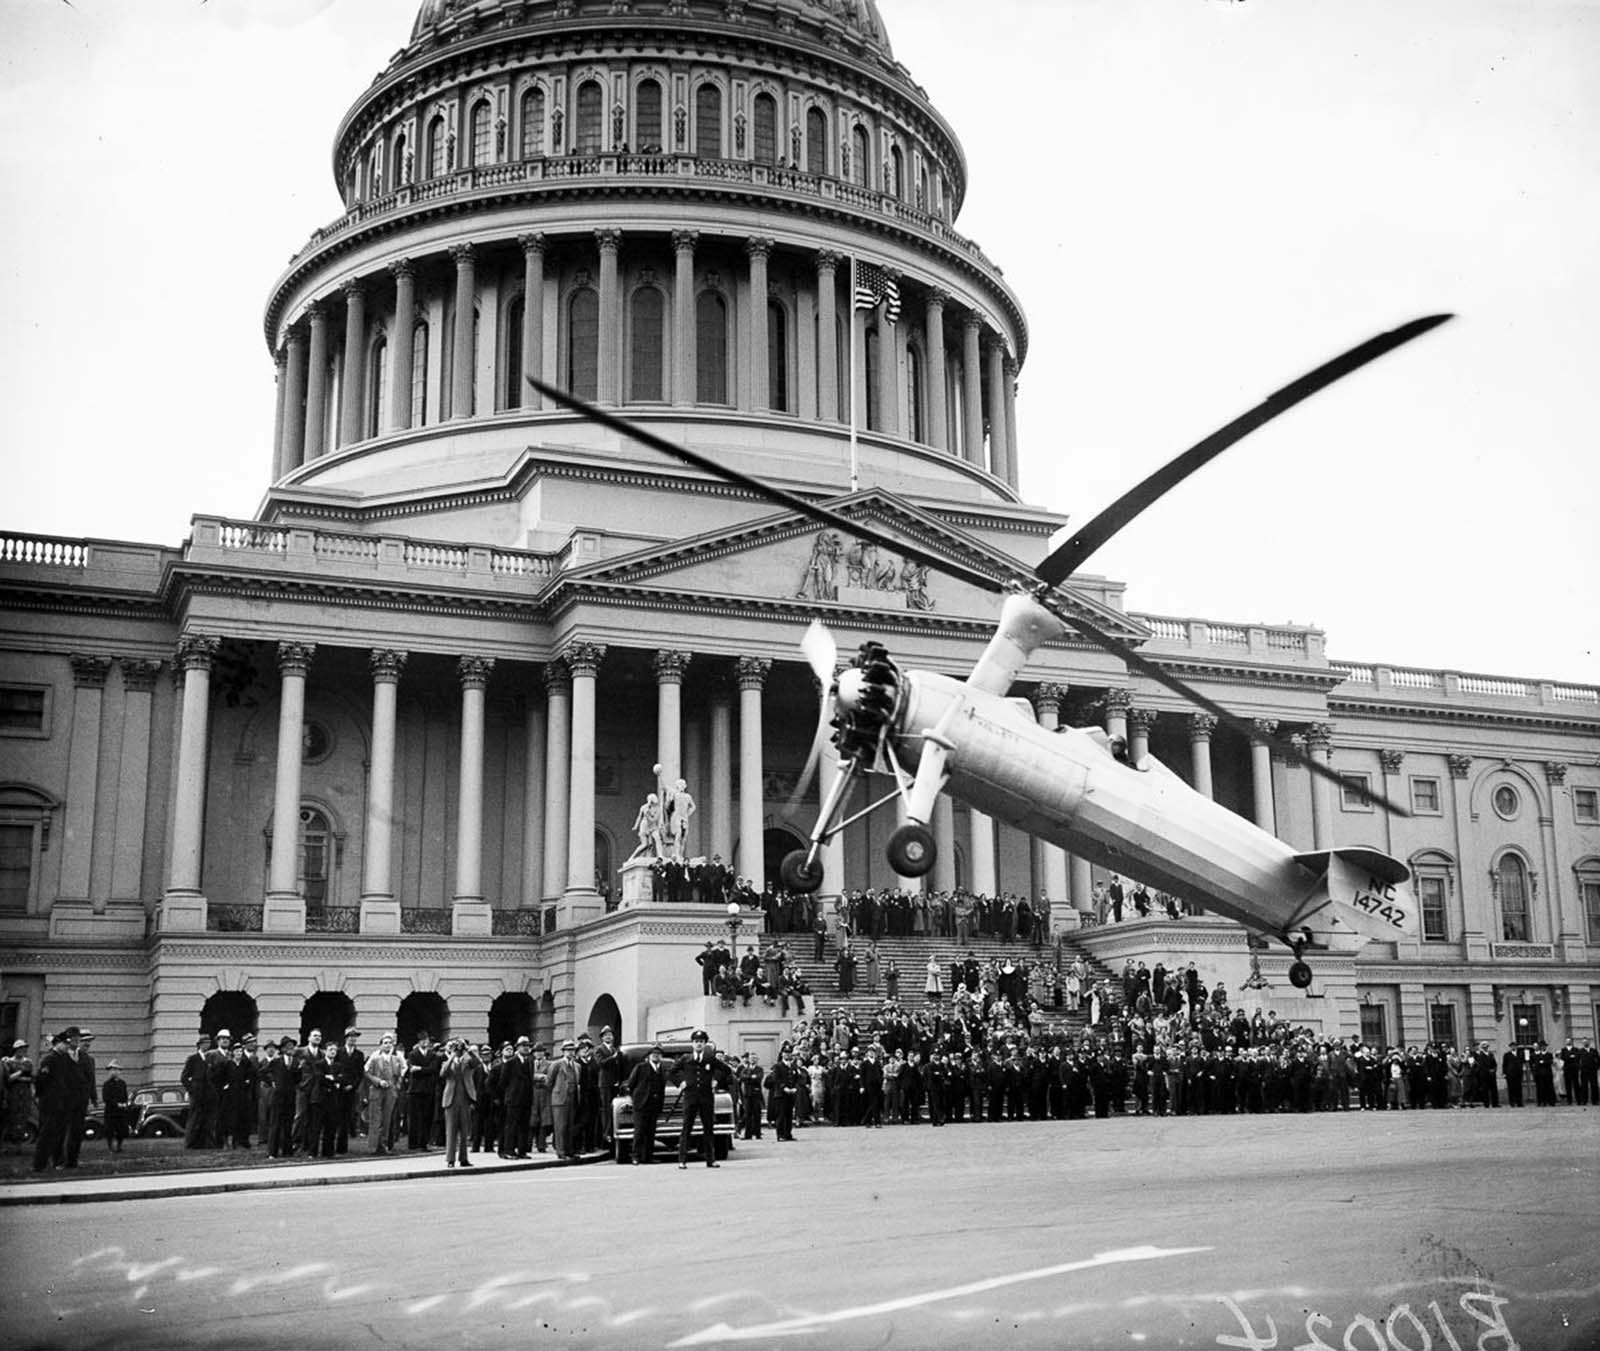 An autogyro takes off in front of the United States Capitol. 1936.